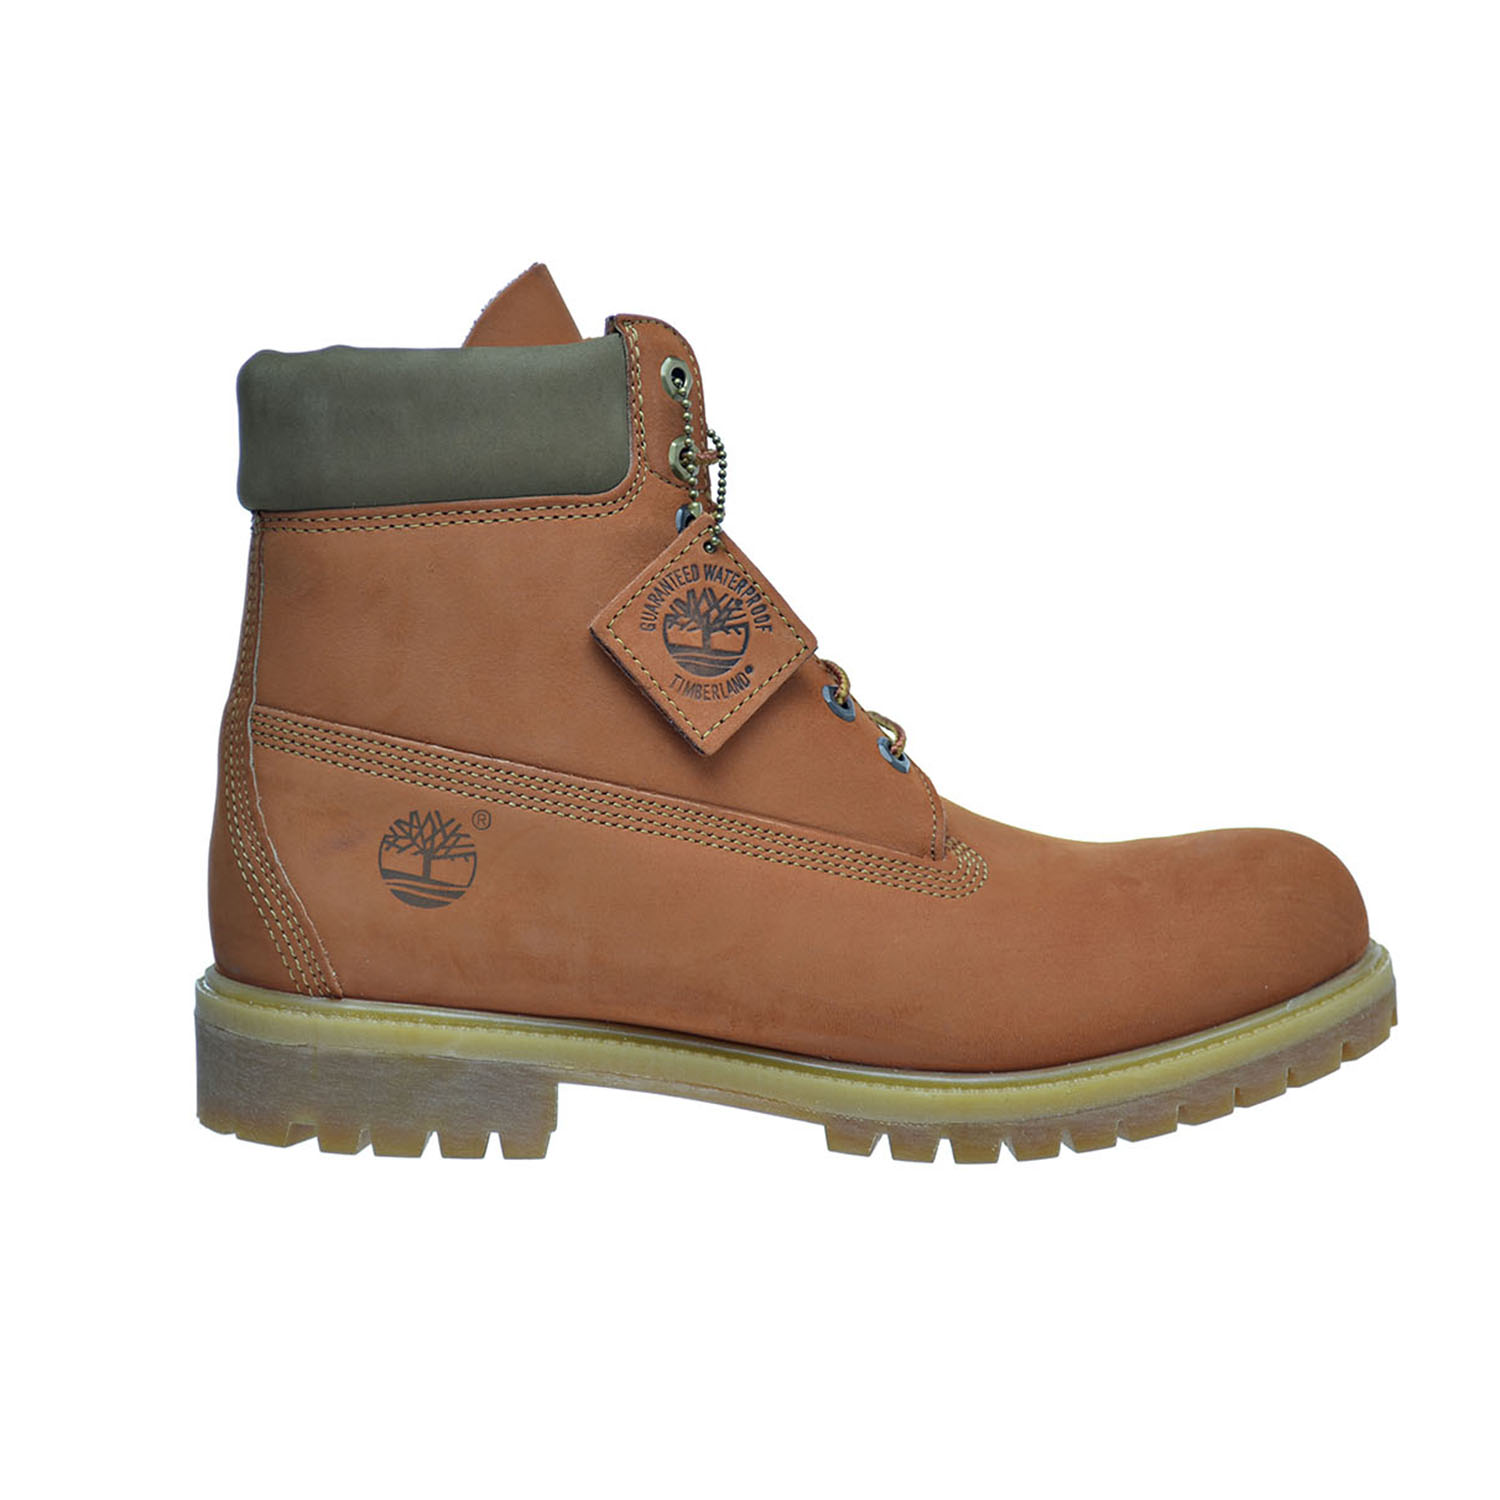 Timberland 6 Inch Men's Premium Boots Orange tb0a17yc by Timberland